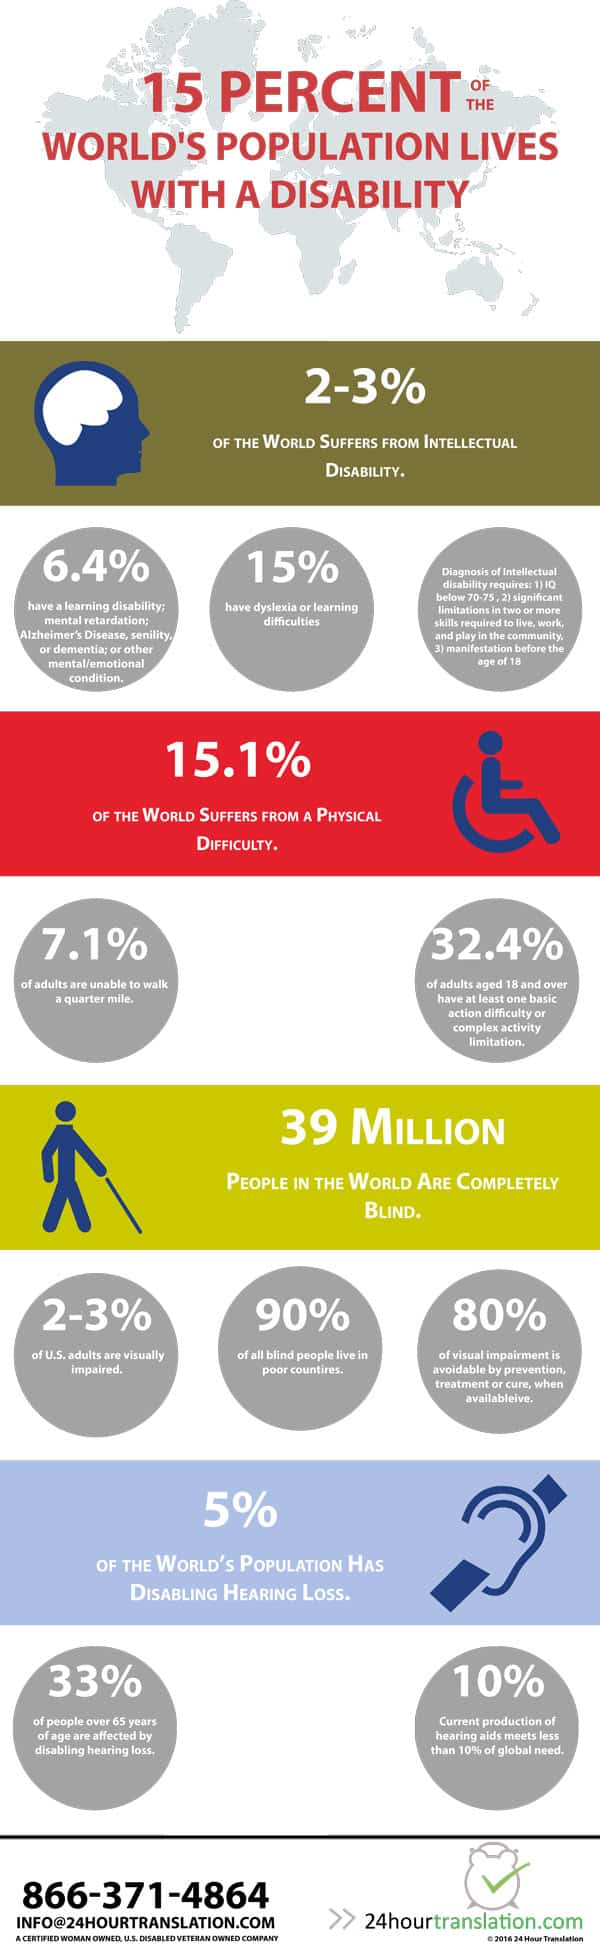 Infographic covering world's population living with a physical or mental disability.